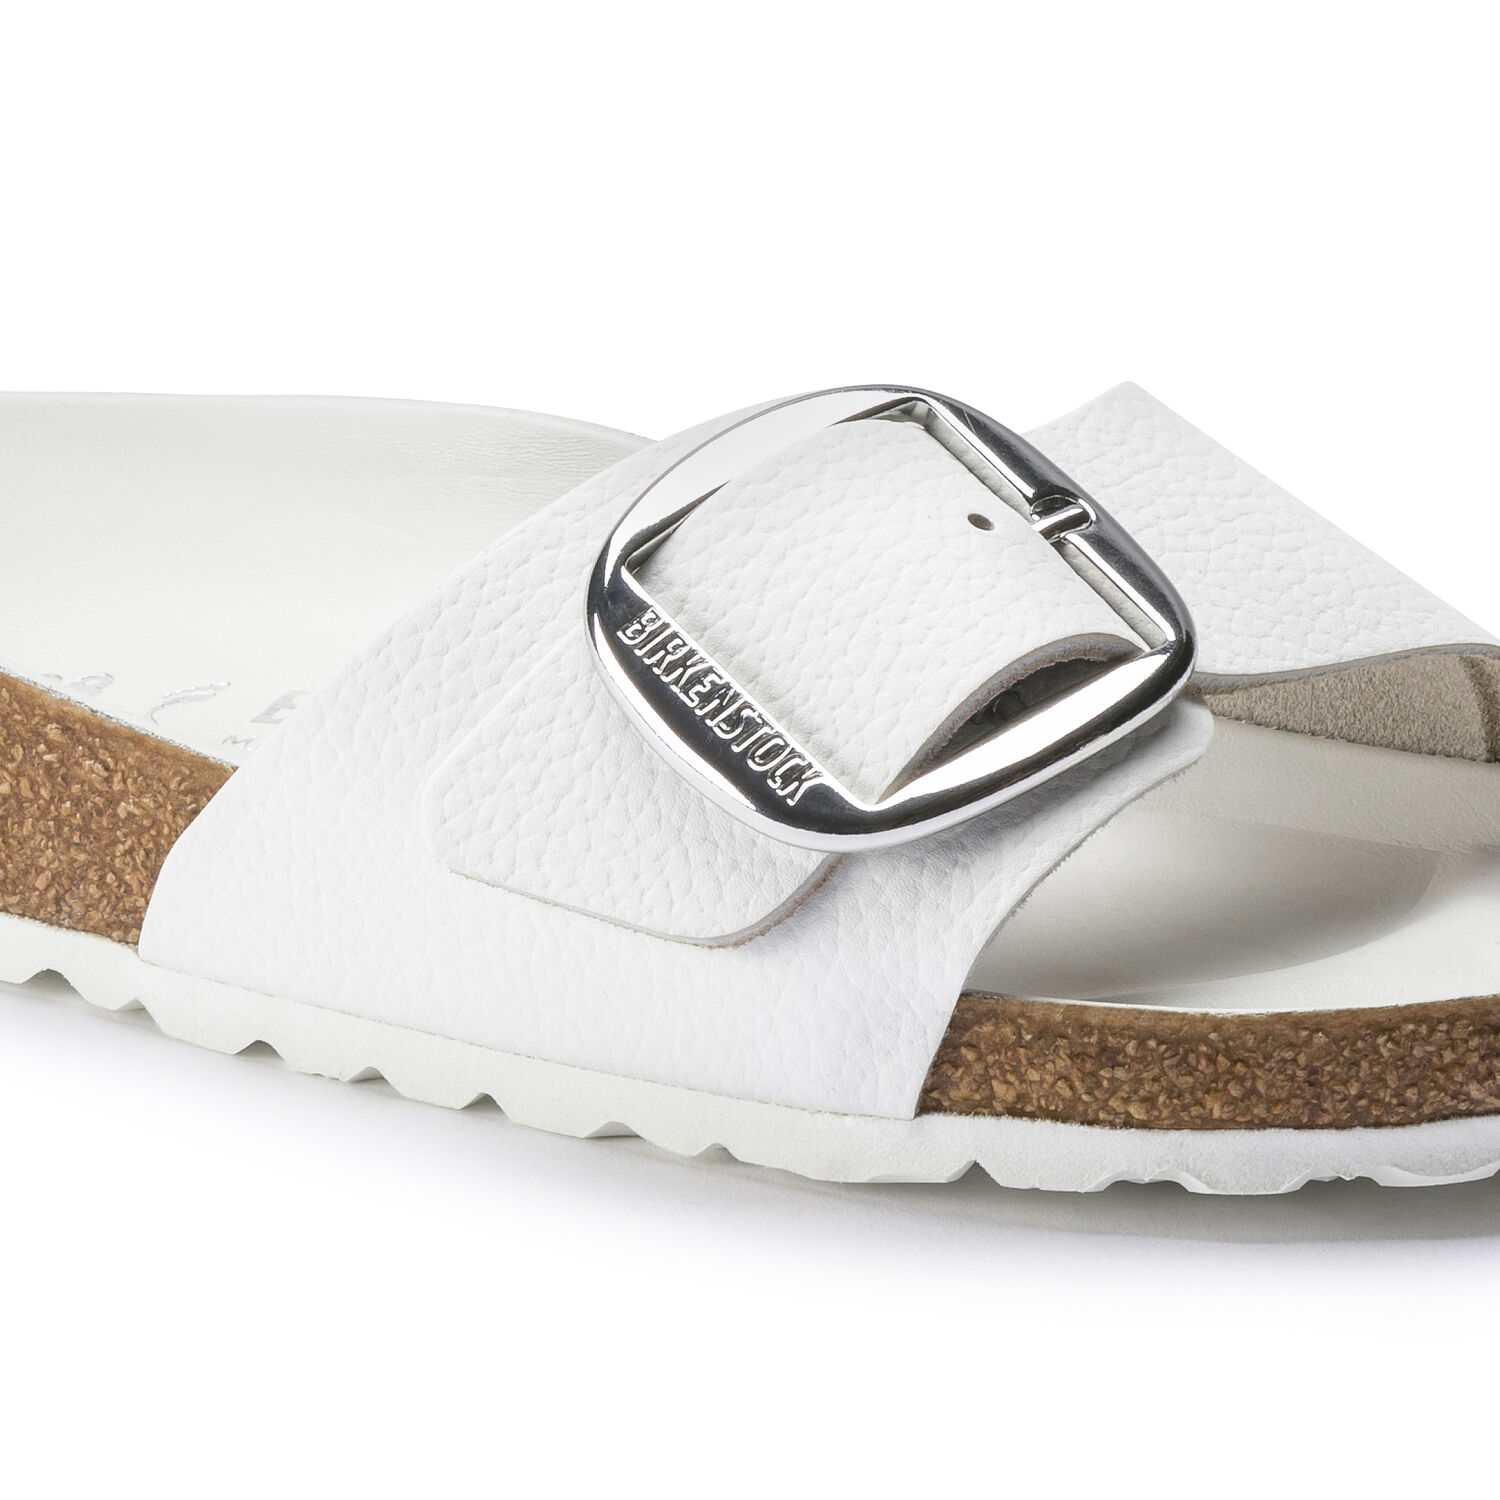 Madrid Big Buckle Natural Leather